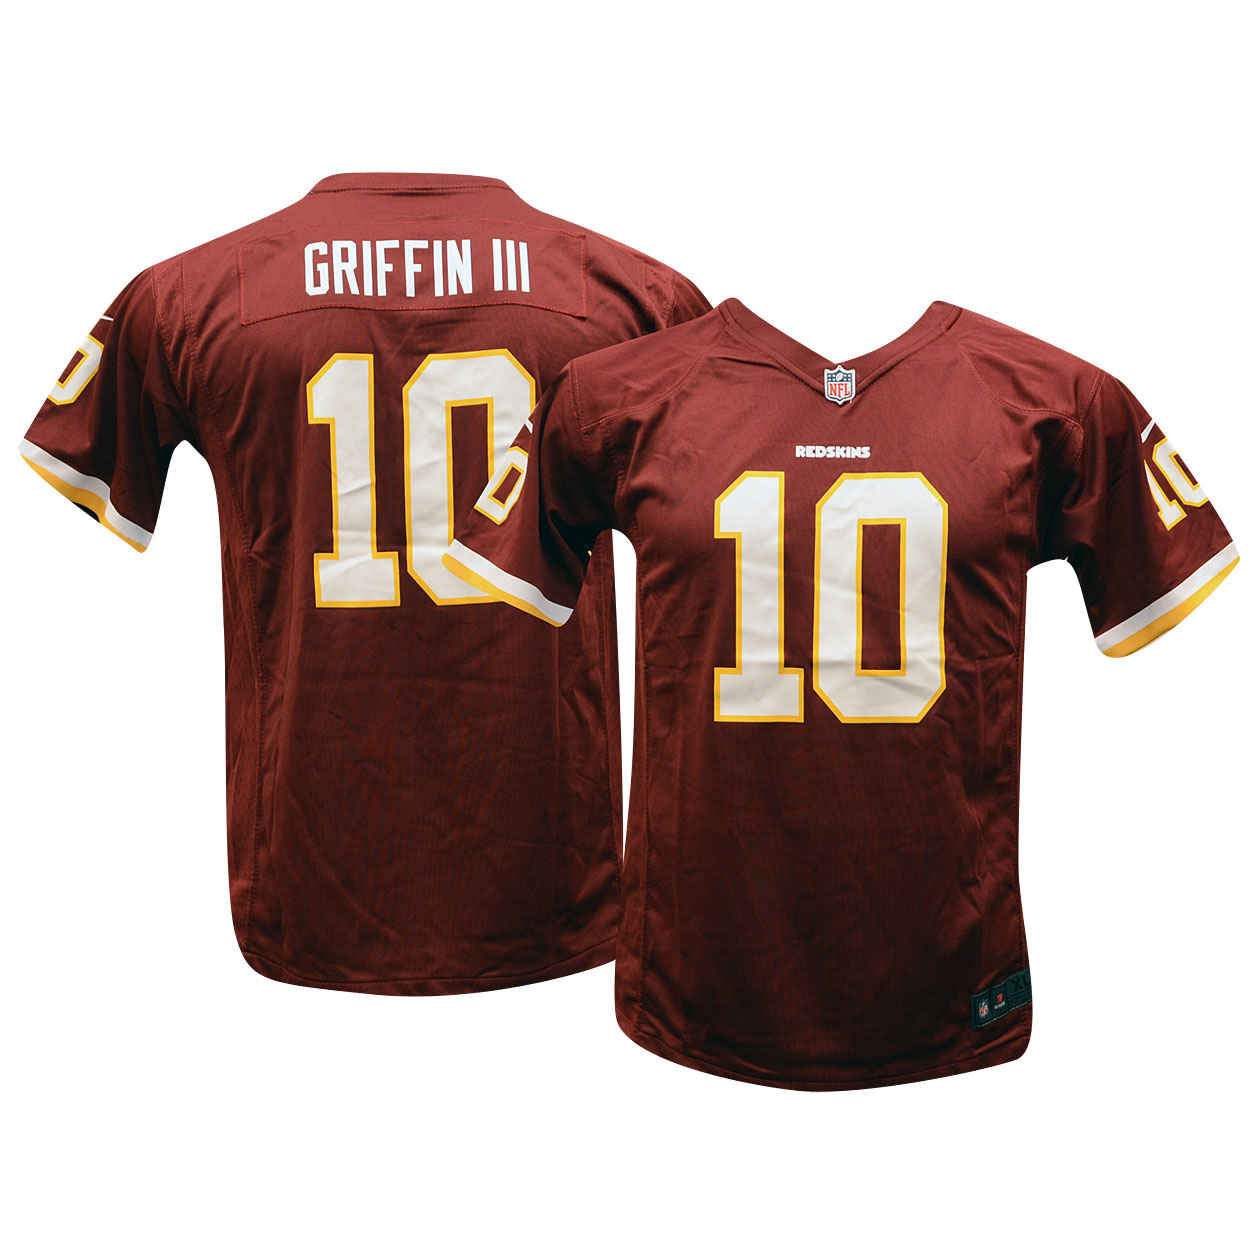 All the best Washington Redskins Gear and Collectibles are at the official online store of the NFL. The Official Redskins Pro Shop on NFL Shop has all the Authentic Washington Jerseys, Hats, Tees, Apparel and more at NFL Shop.